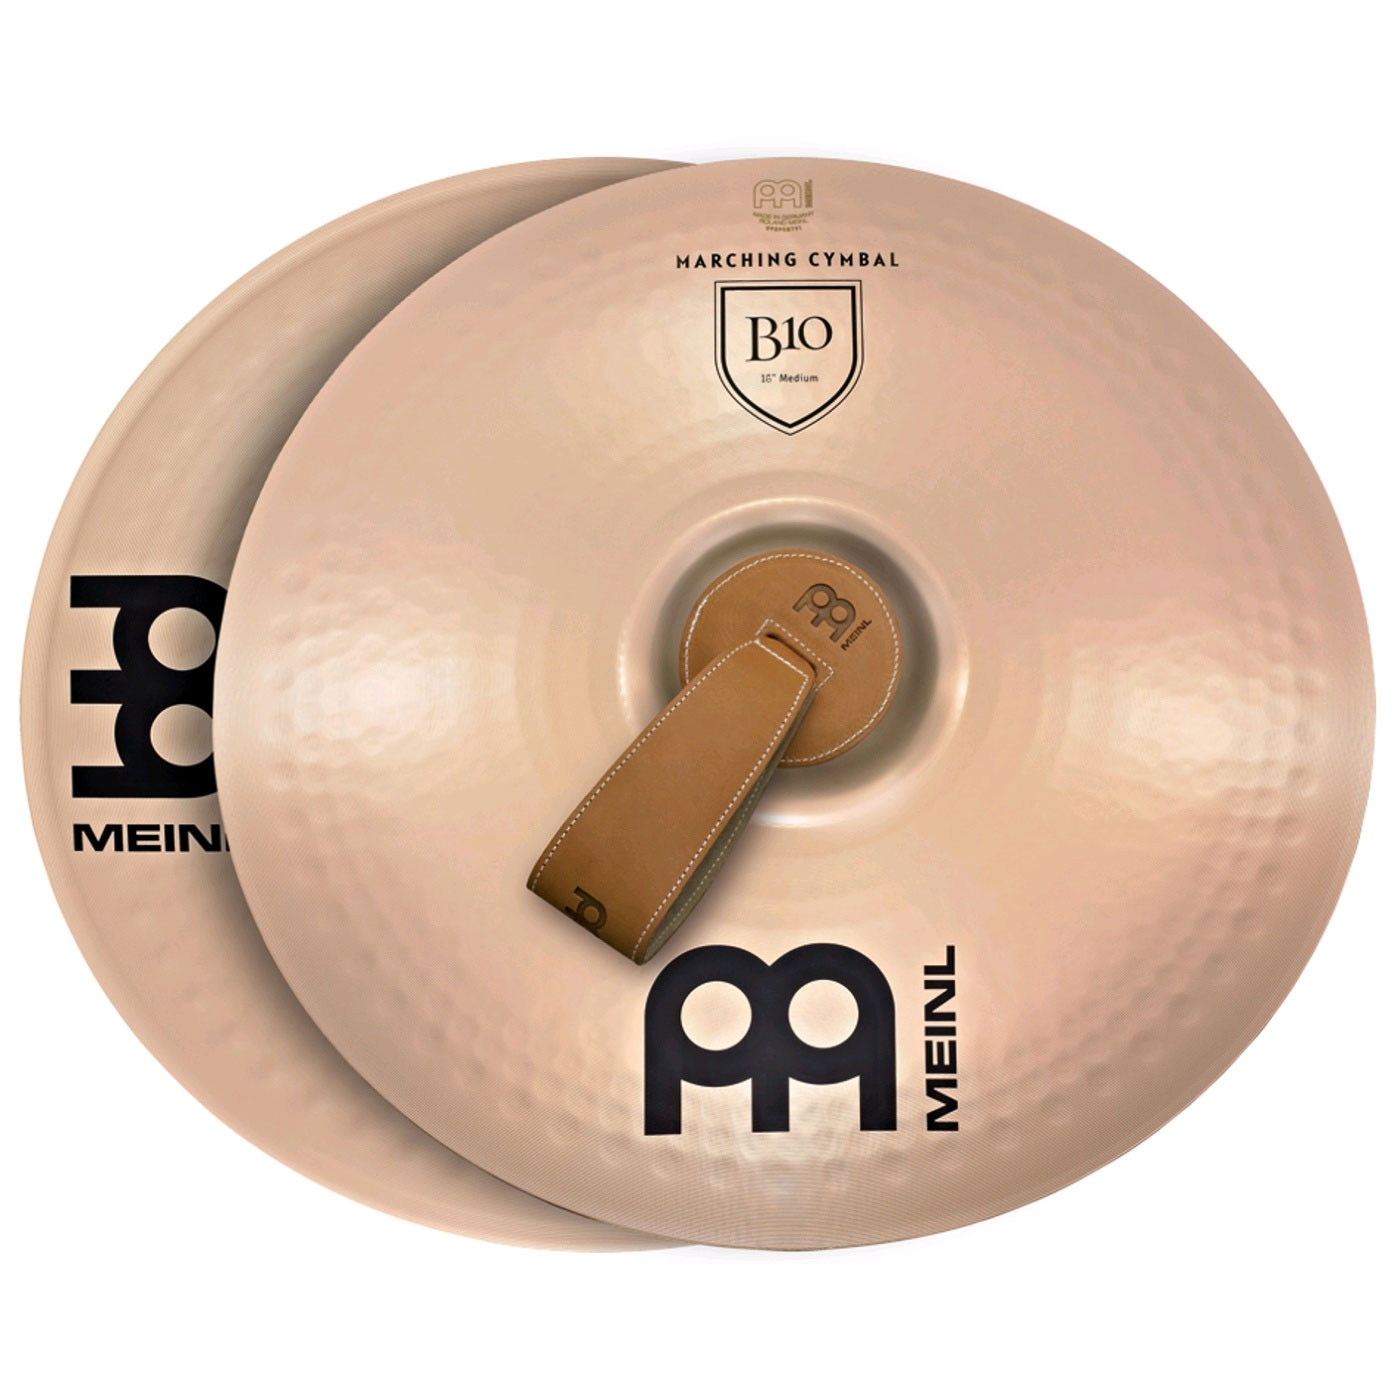 "Meinl 18"" Medium B10 Marching Cymbals Pair"